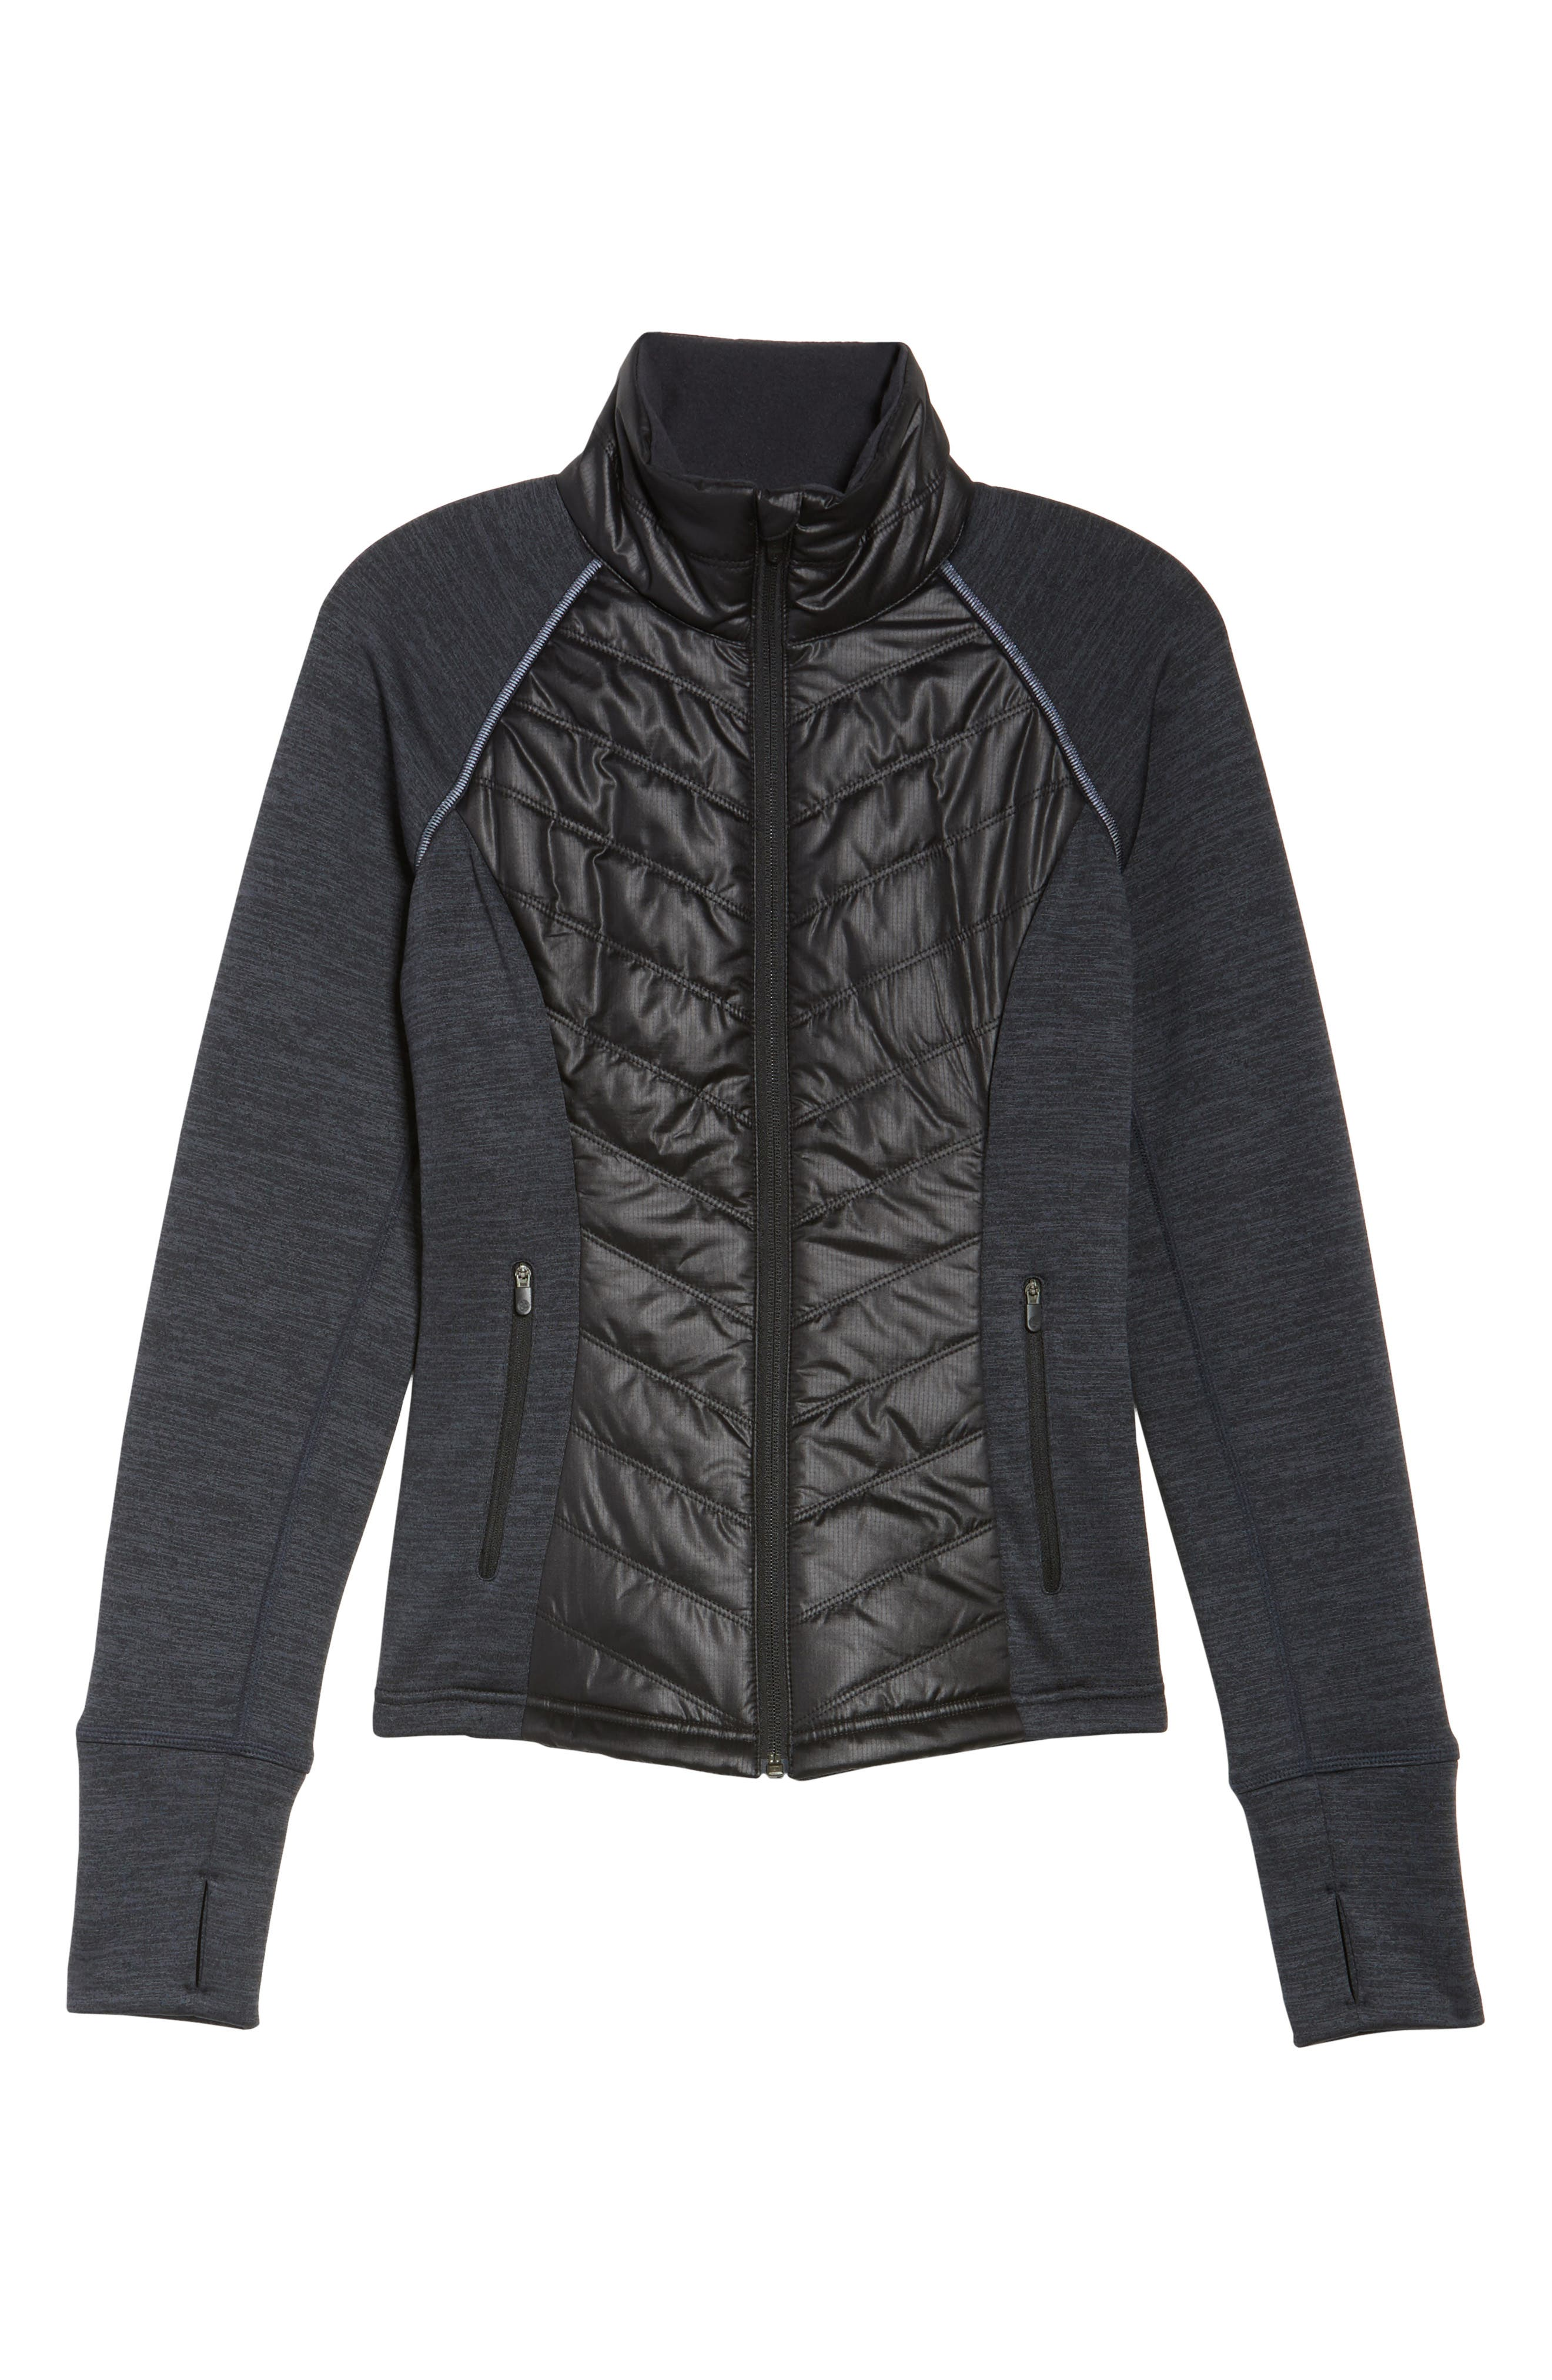 Zelfusion Reflective Quilted Jacket,                             Alternate thumbnail 6, color,                             001